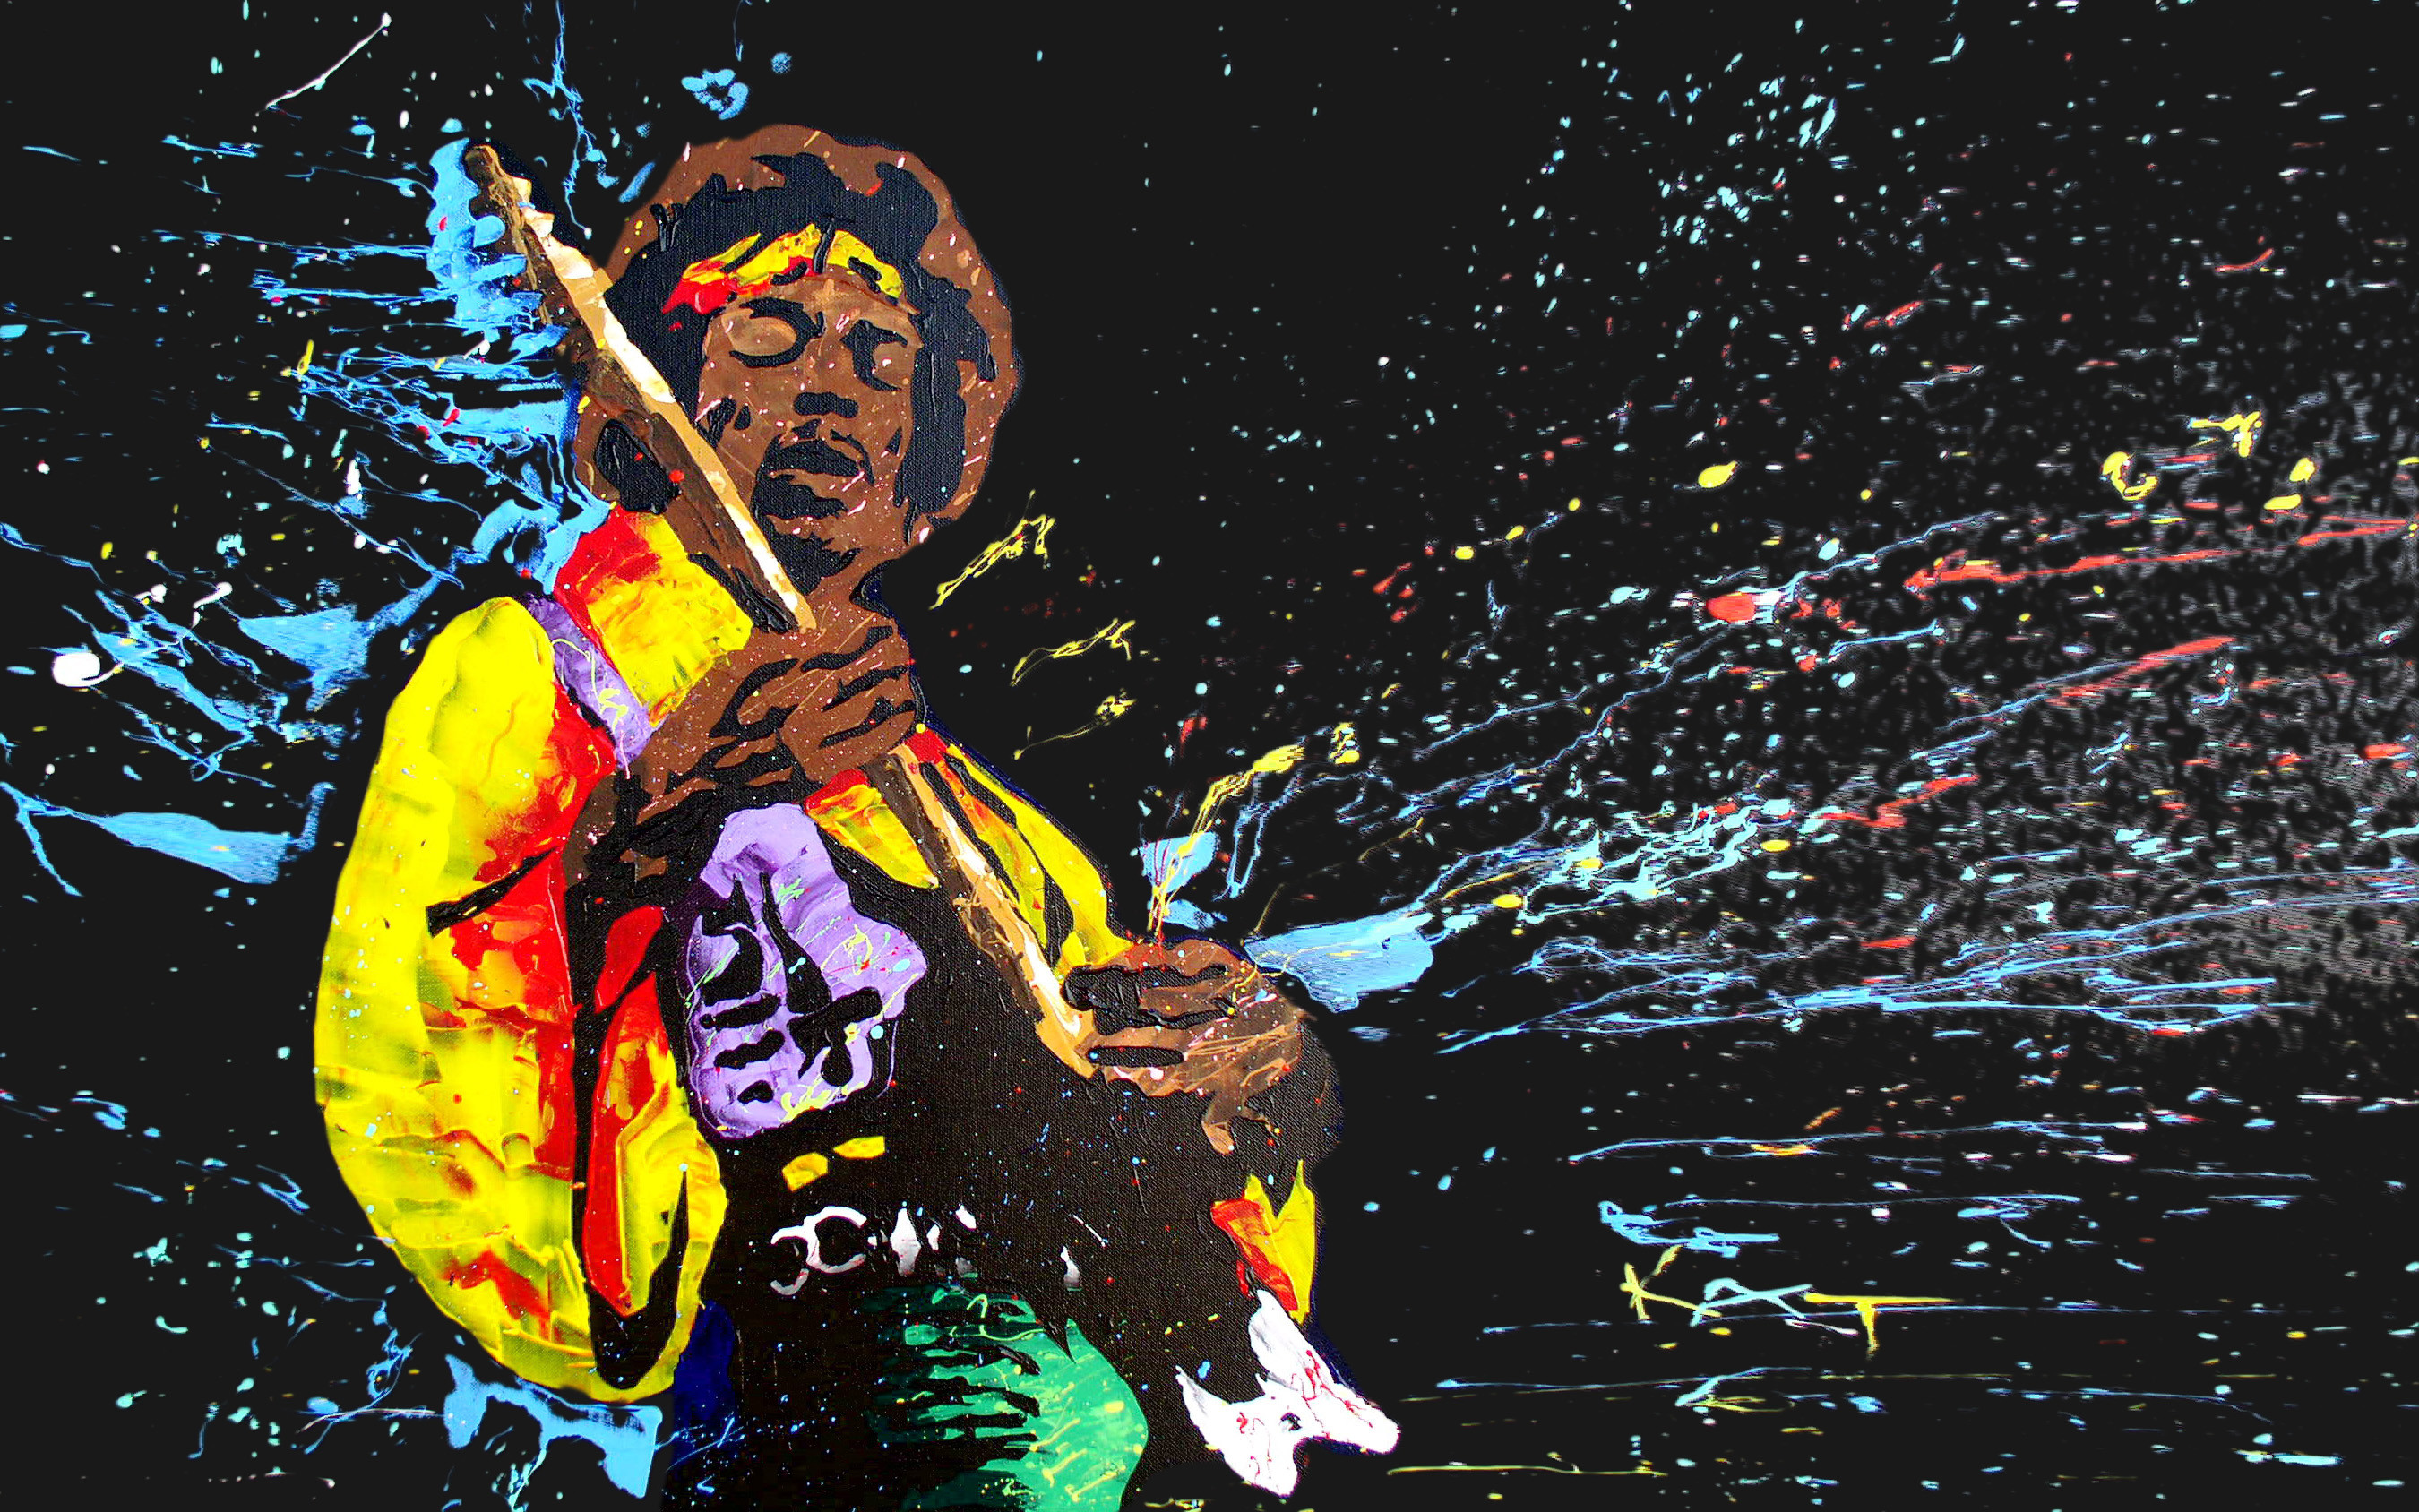 Jimi hendrix wallpaper 67 images 2700x1688 music jimi hendrix wallpaper altavistaventures